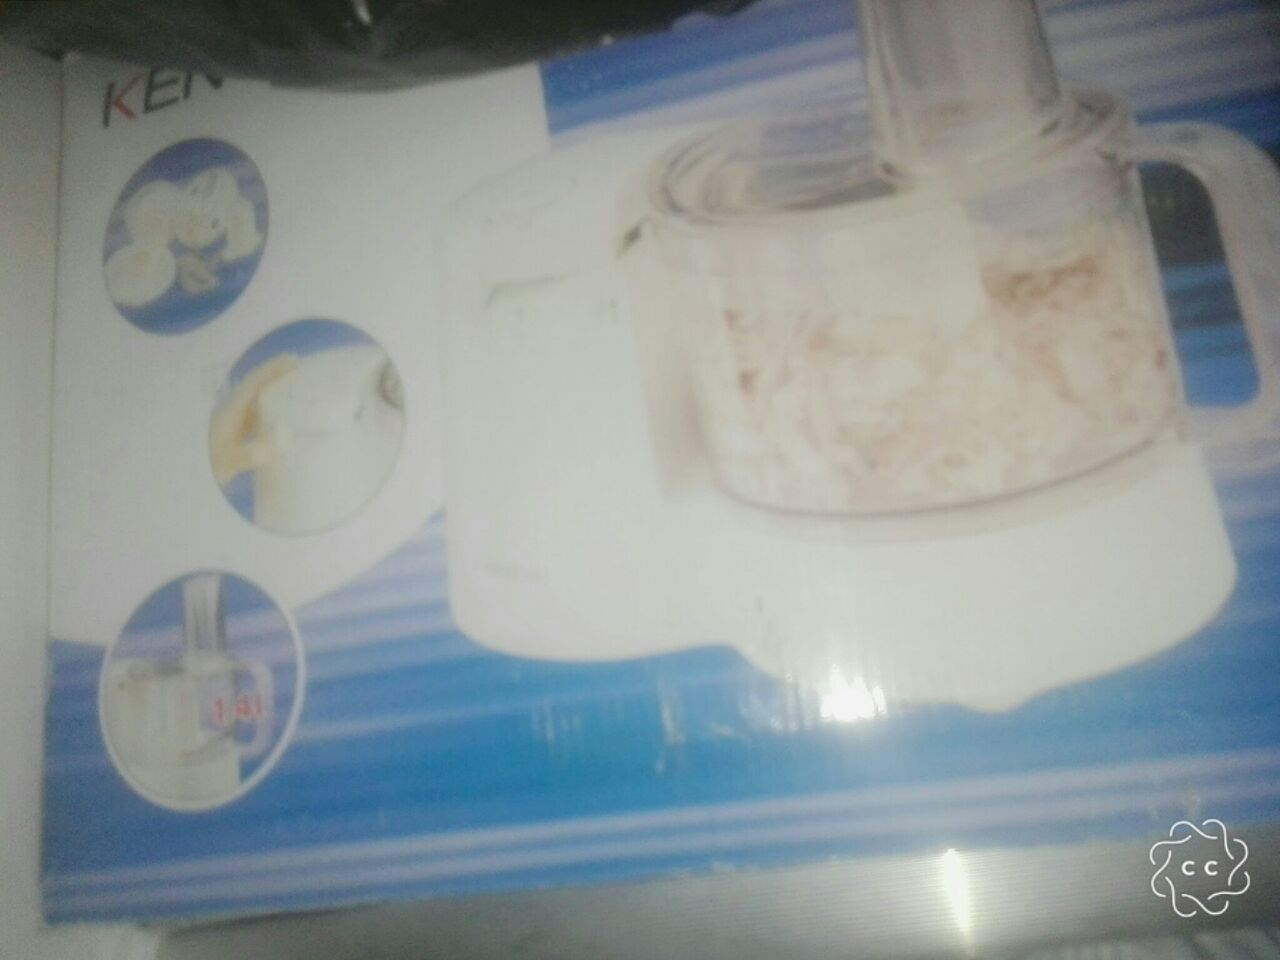 Brand new blender. Never been used